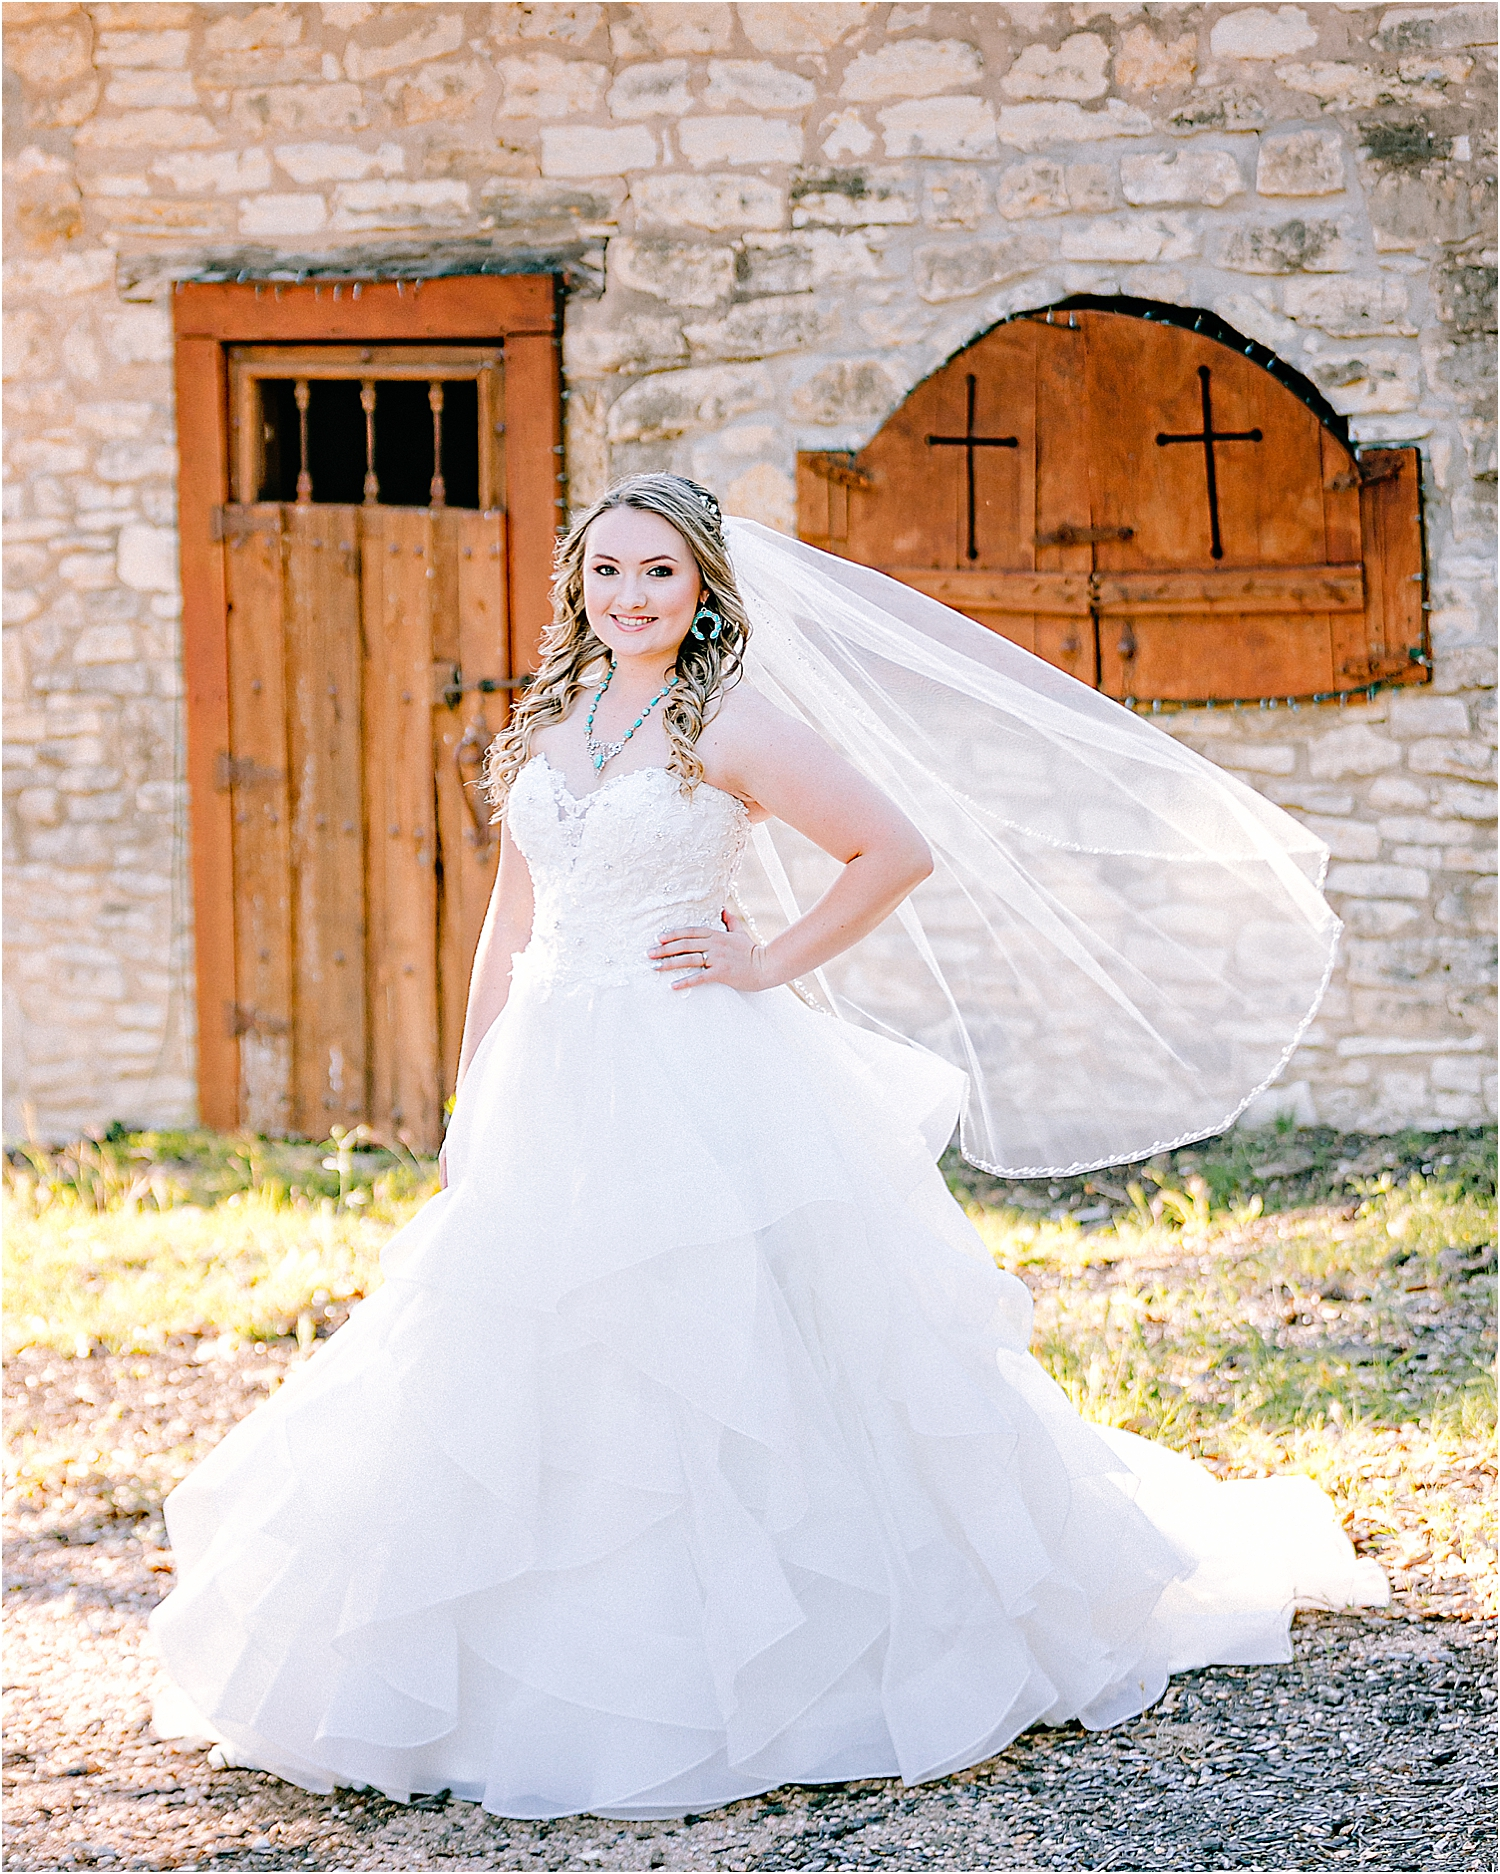 Carly-Barton-Photography-Texas-Bridals-Boerne-Rustic-Wedding-Photos_0004.jpg